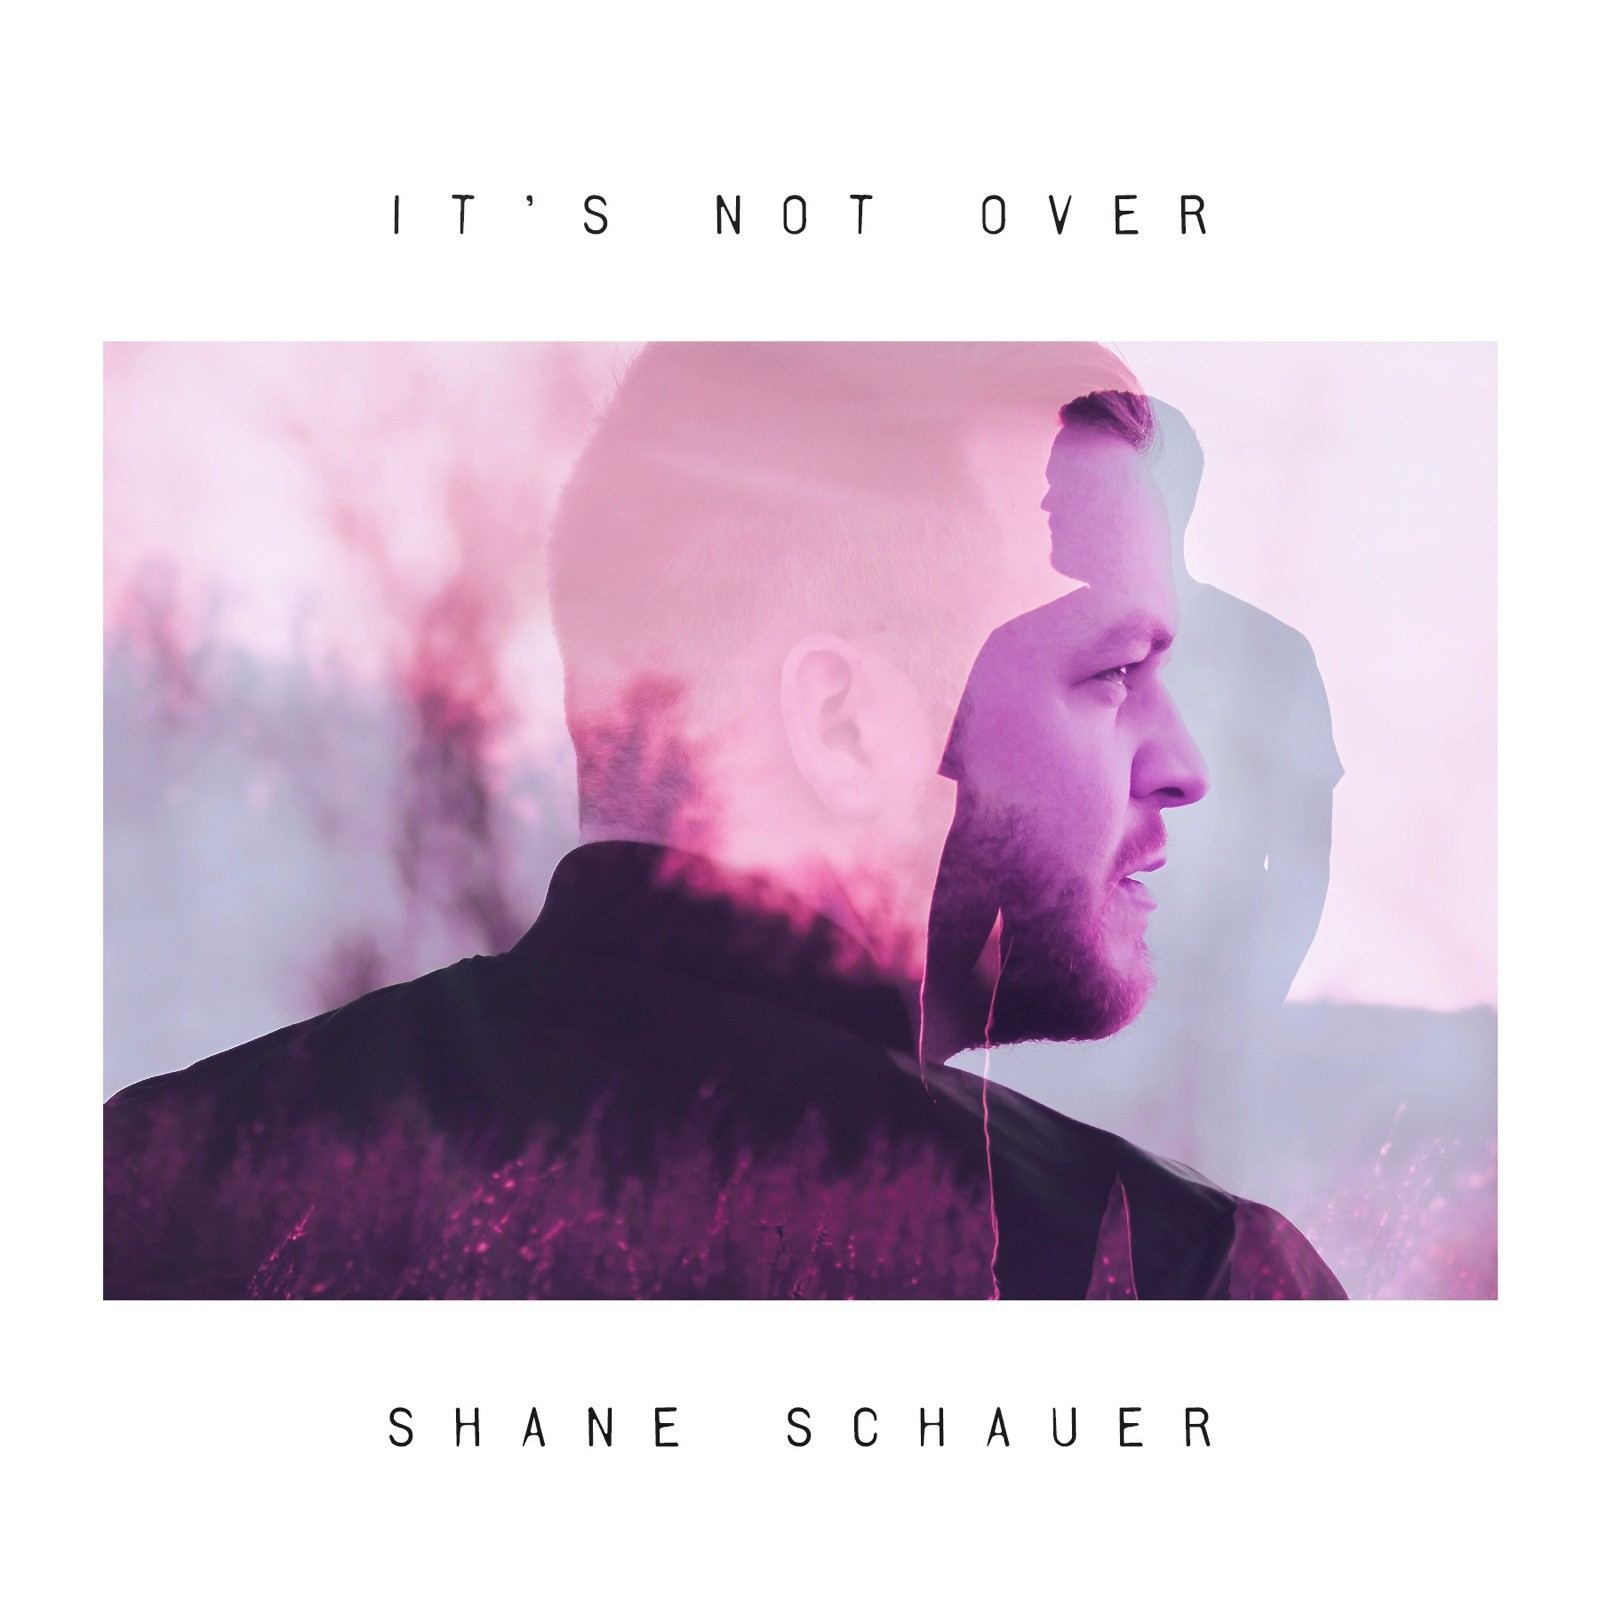 AWARD WINNER SHANE SCHAUER RELEASES NEW SINGLE